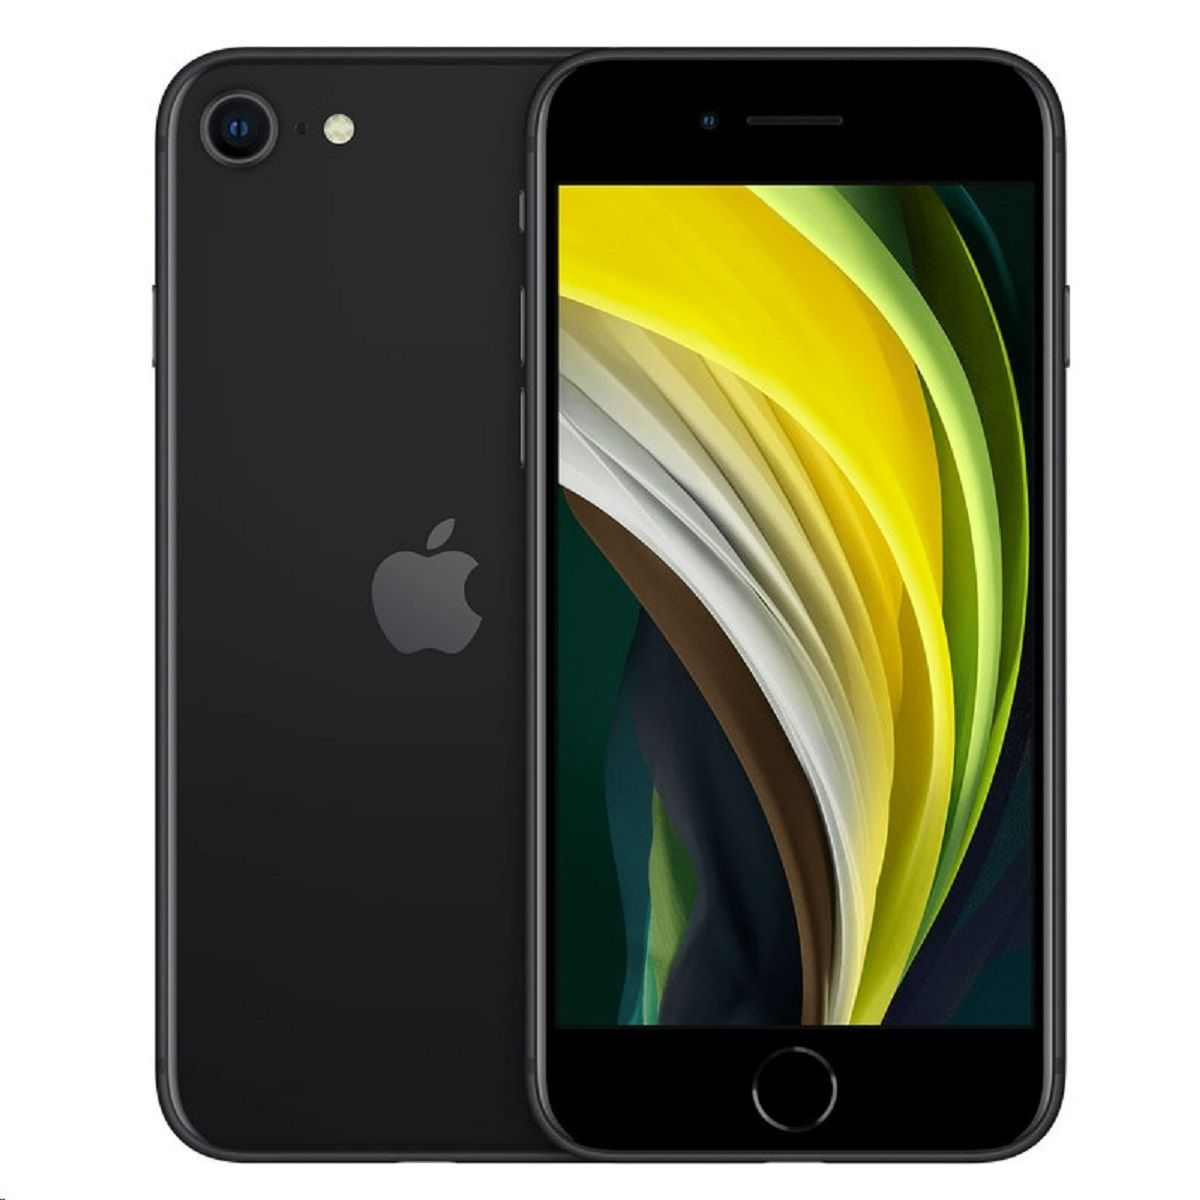 iPhone 9 Nuevo Modelo iPhone SE2 128Gb